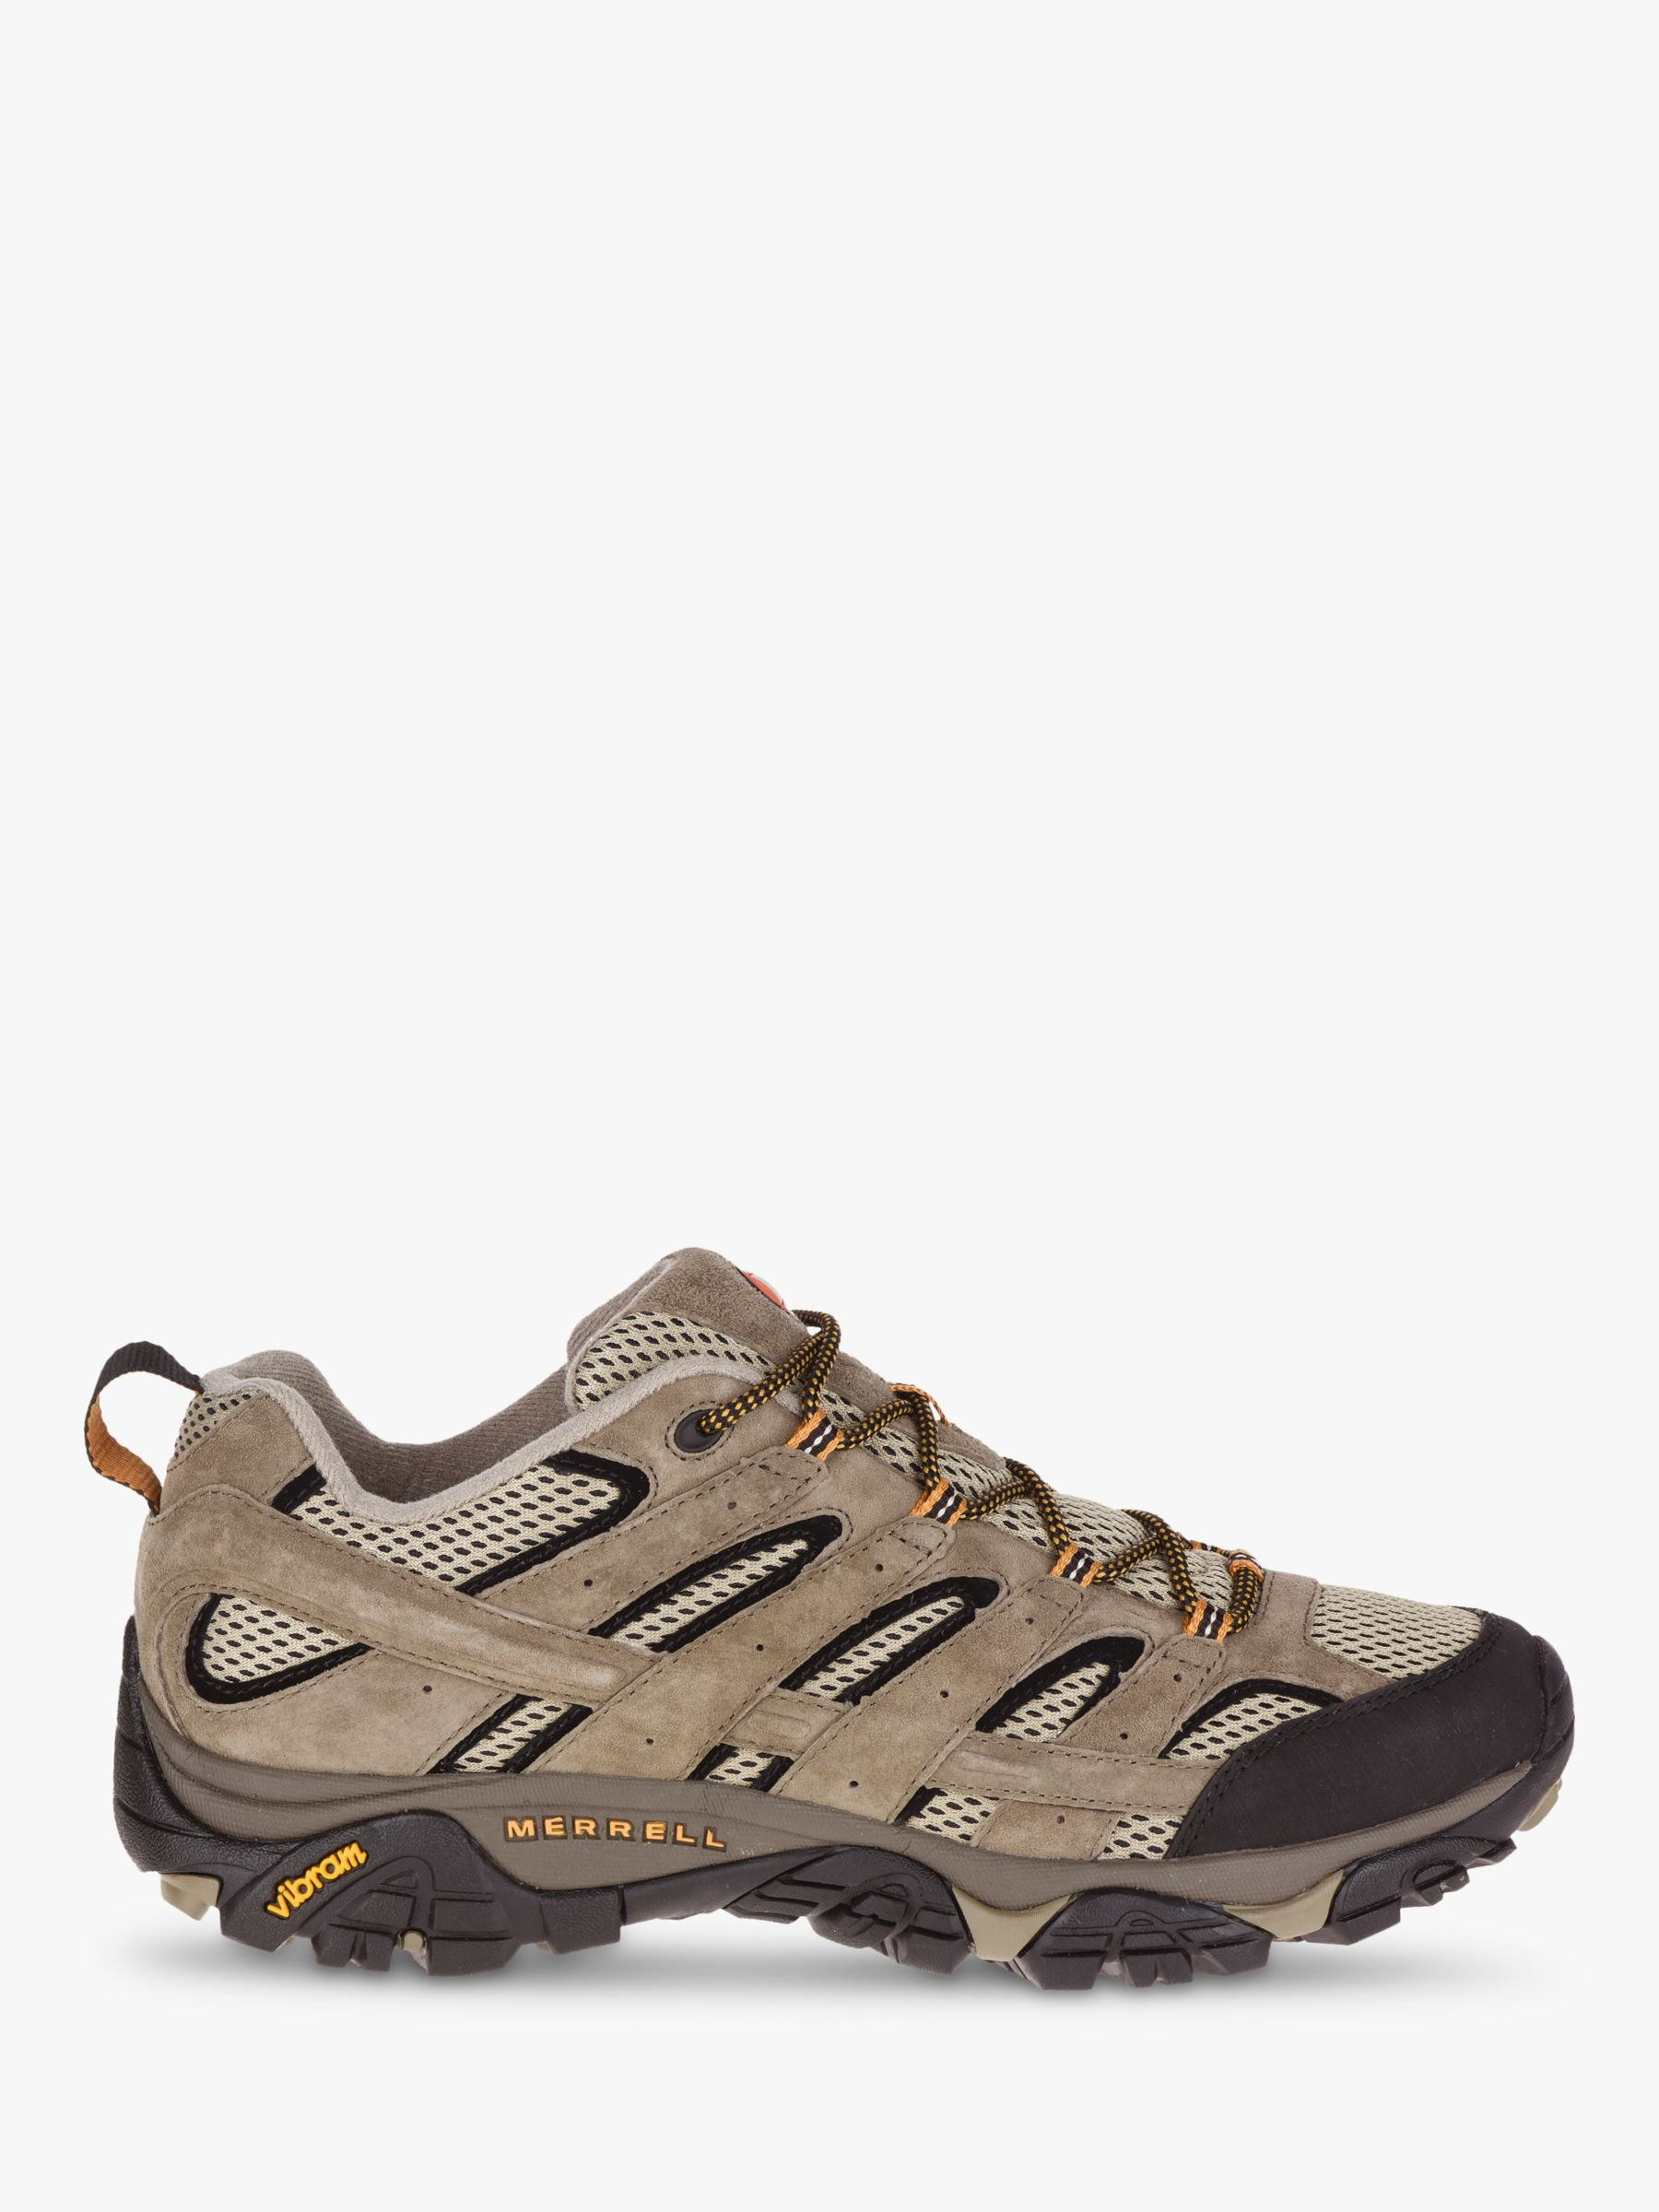 Merrell Merrell Men's Moab Ventilator 2 Hiking Shoes, Pecan